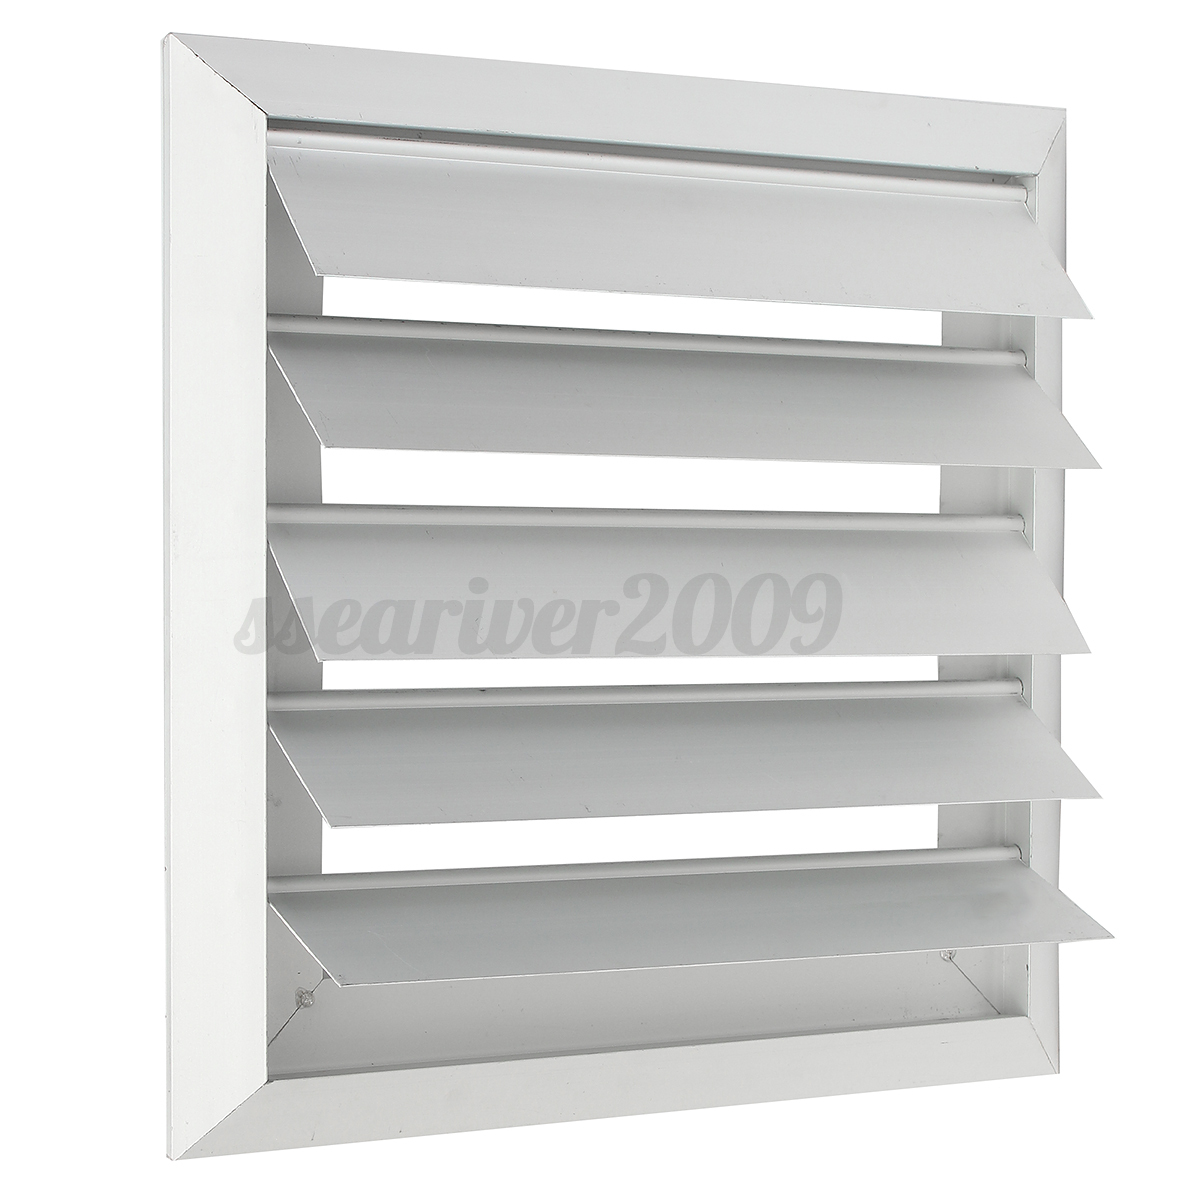 air vent grille cover 4 5 6 7 flaps wall duct ventilation louvre exhaust hood ebay. Black Bedroom Furniture Sets. Home Design Ideas